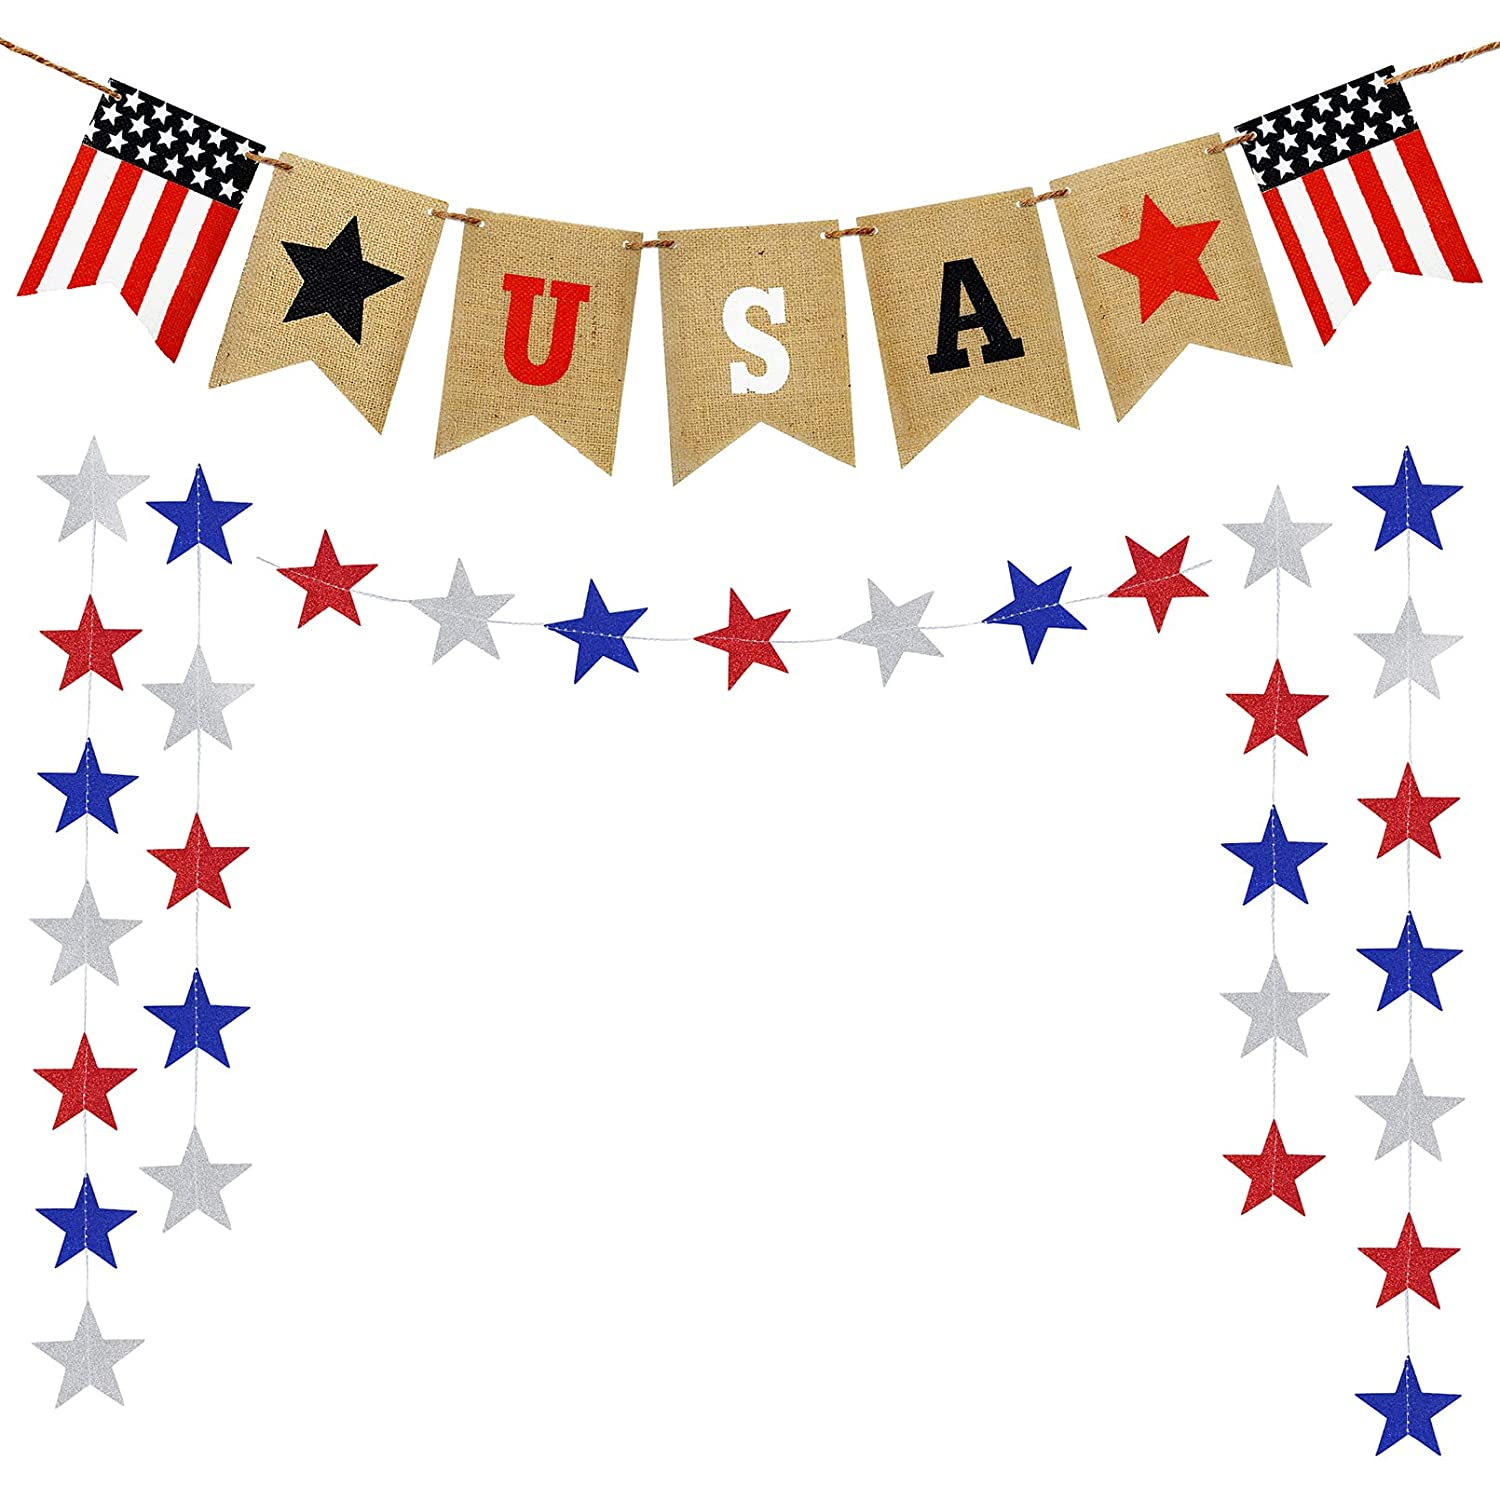 Korlon 4th of July decor Banner, American Flag Banner & Star Garland Patriotic Decorations for The Home, USA Flag Independence Day Celebration Party Supplies